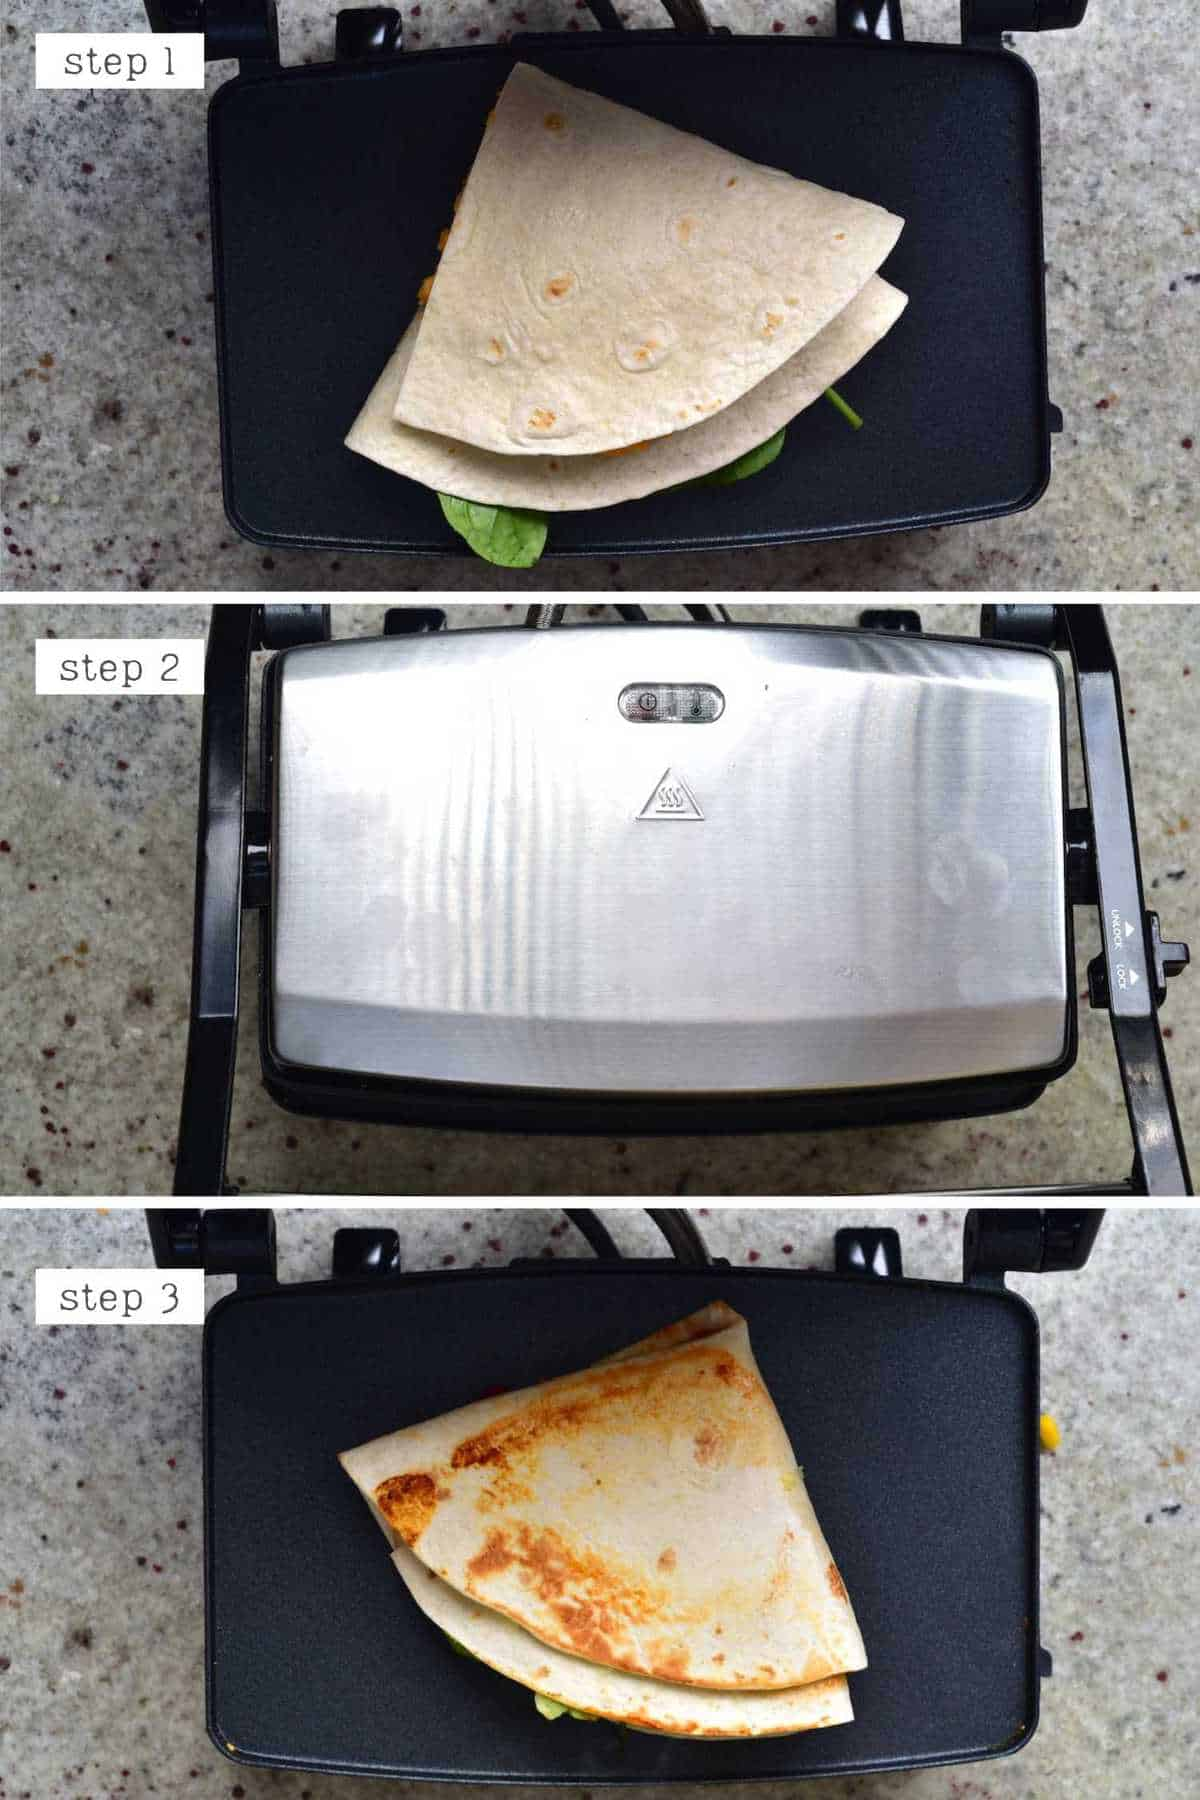 Steps for heating up a tortilla